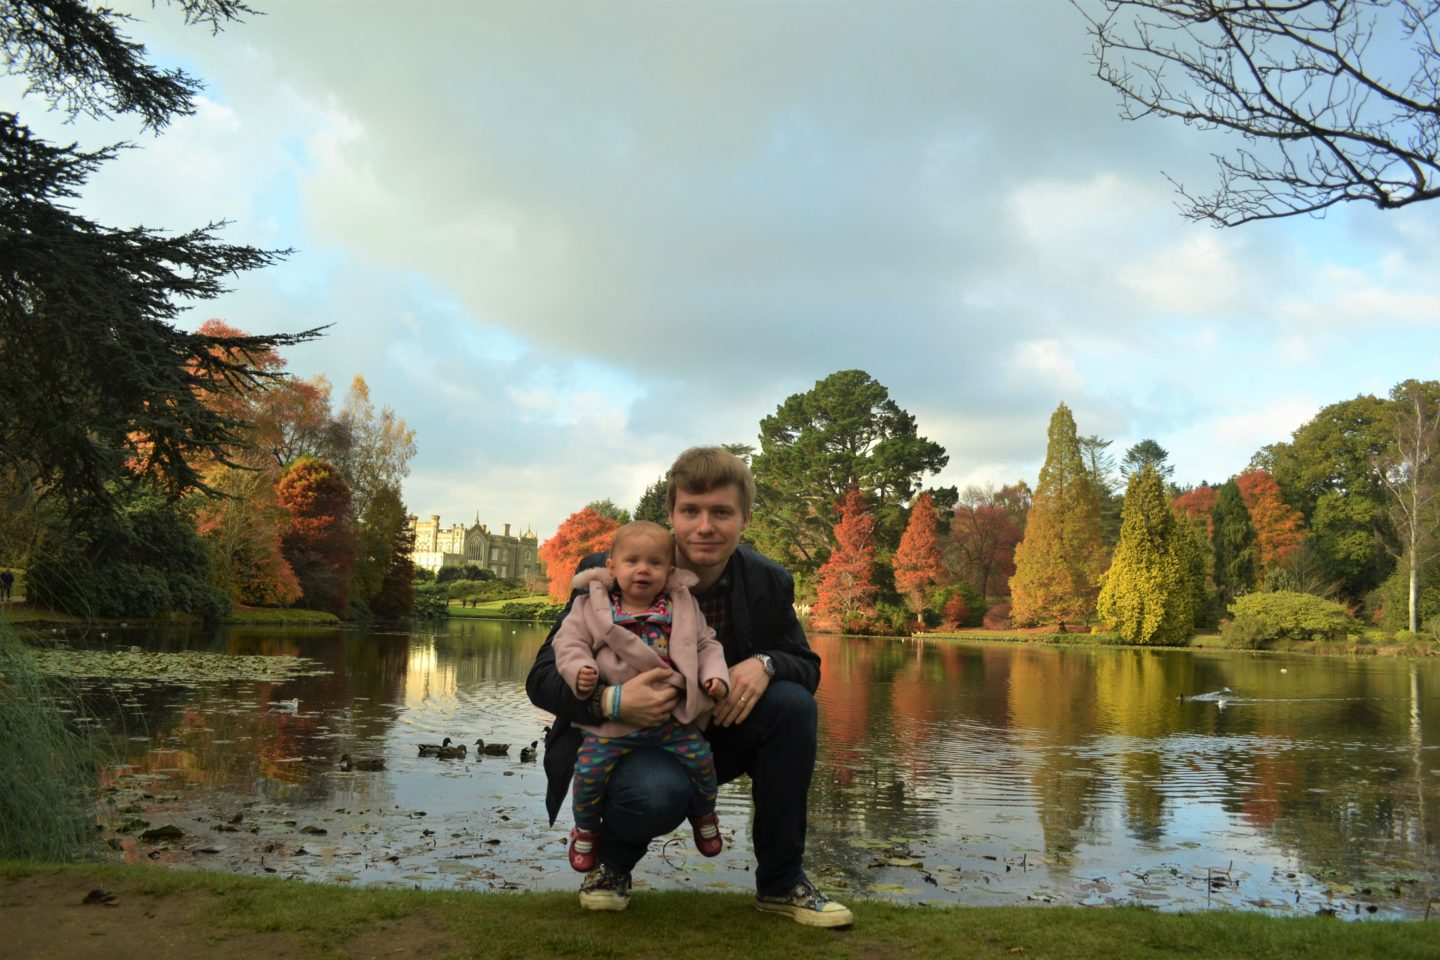 A family day out at Sheffield Park